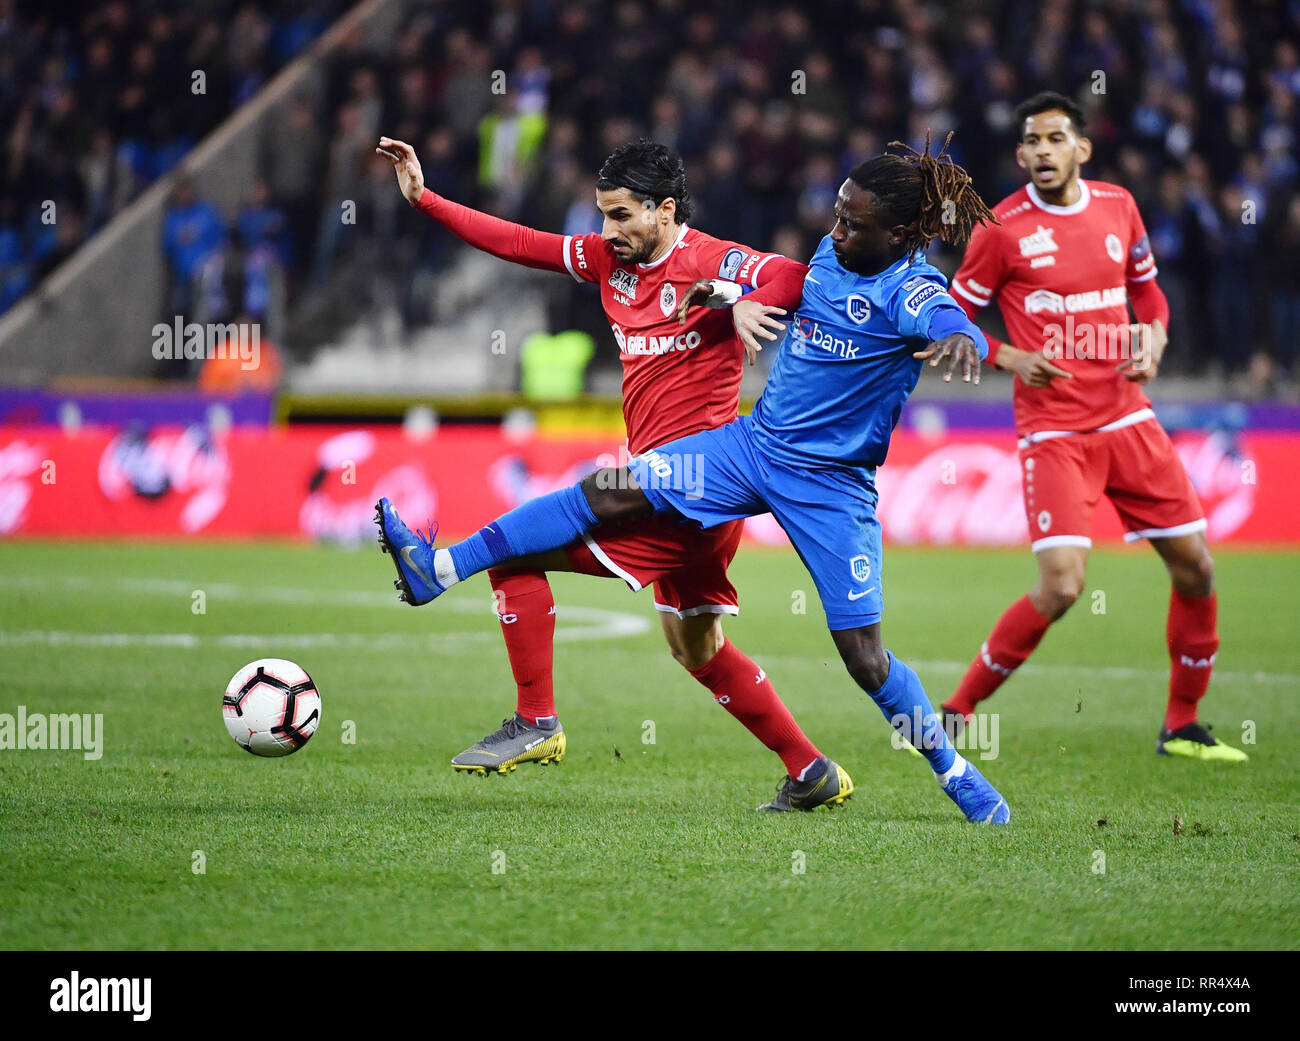 Genk Belgium February 24 Lior Refaelov Of Antwerp And Dieumerci Ndongala Of Genk Fight For The Ball During The Jupiler Pro League Match Day 27 Between Krc Genk And Royal Antwerp